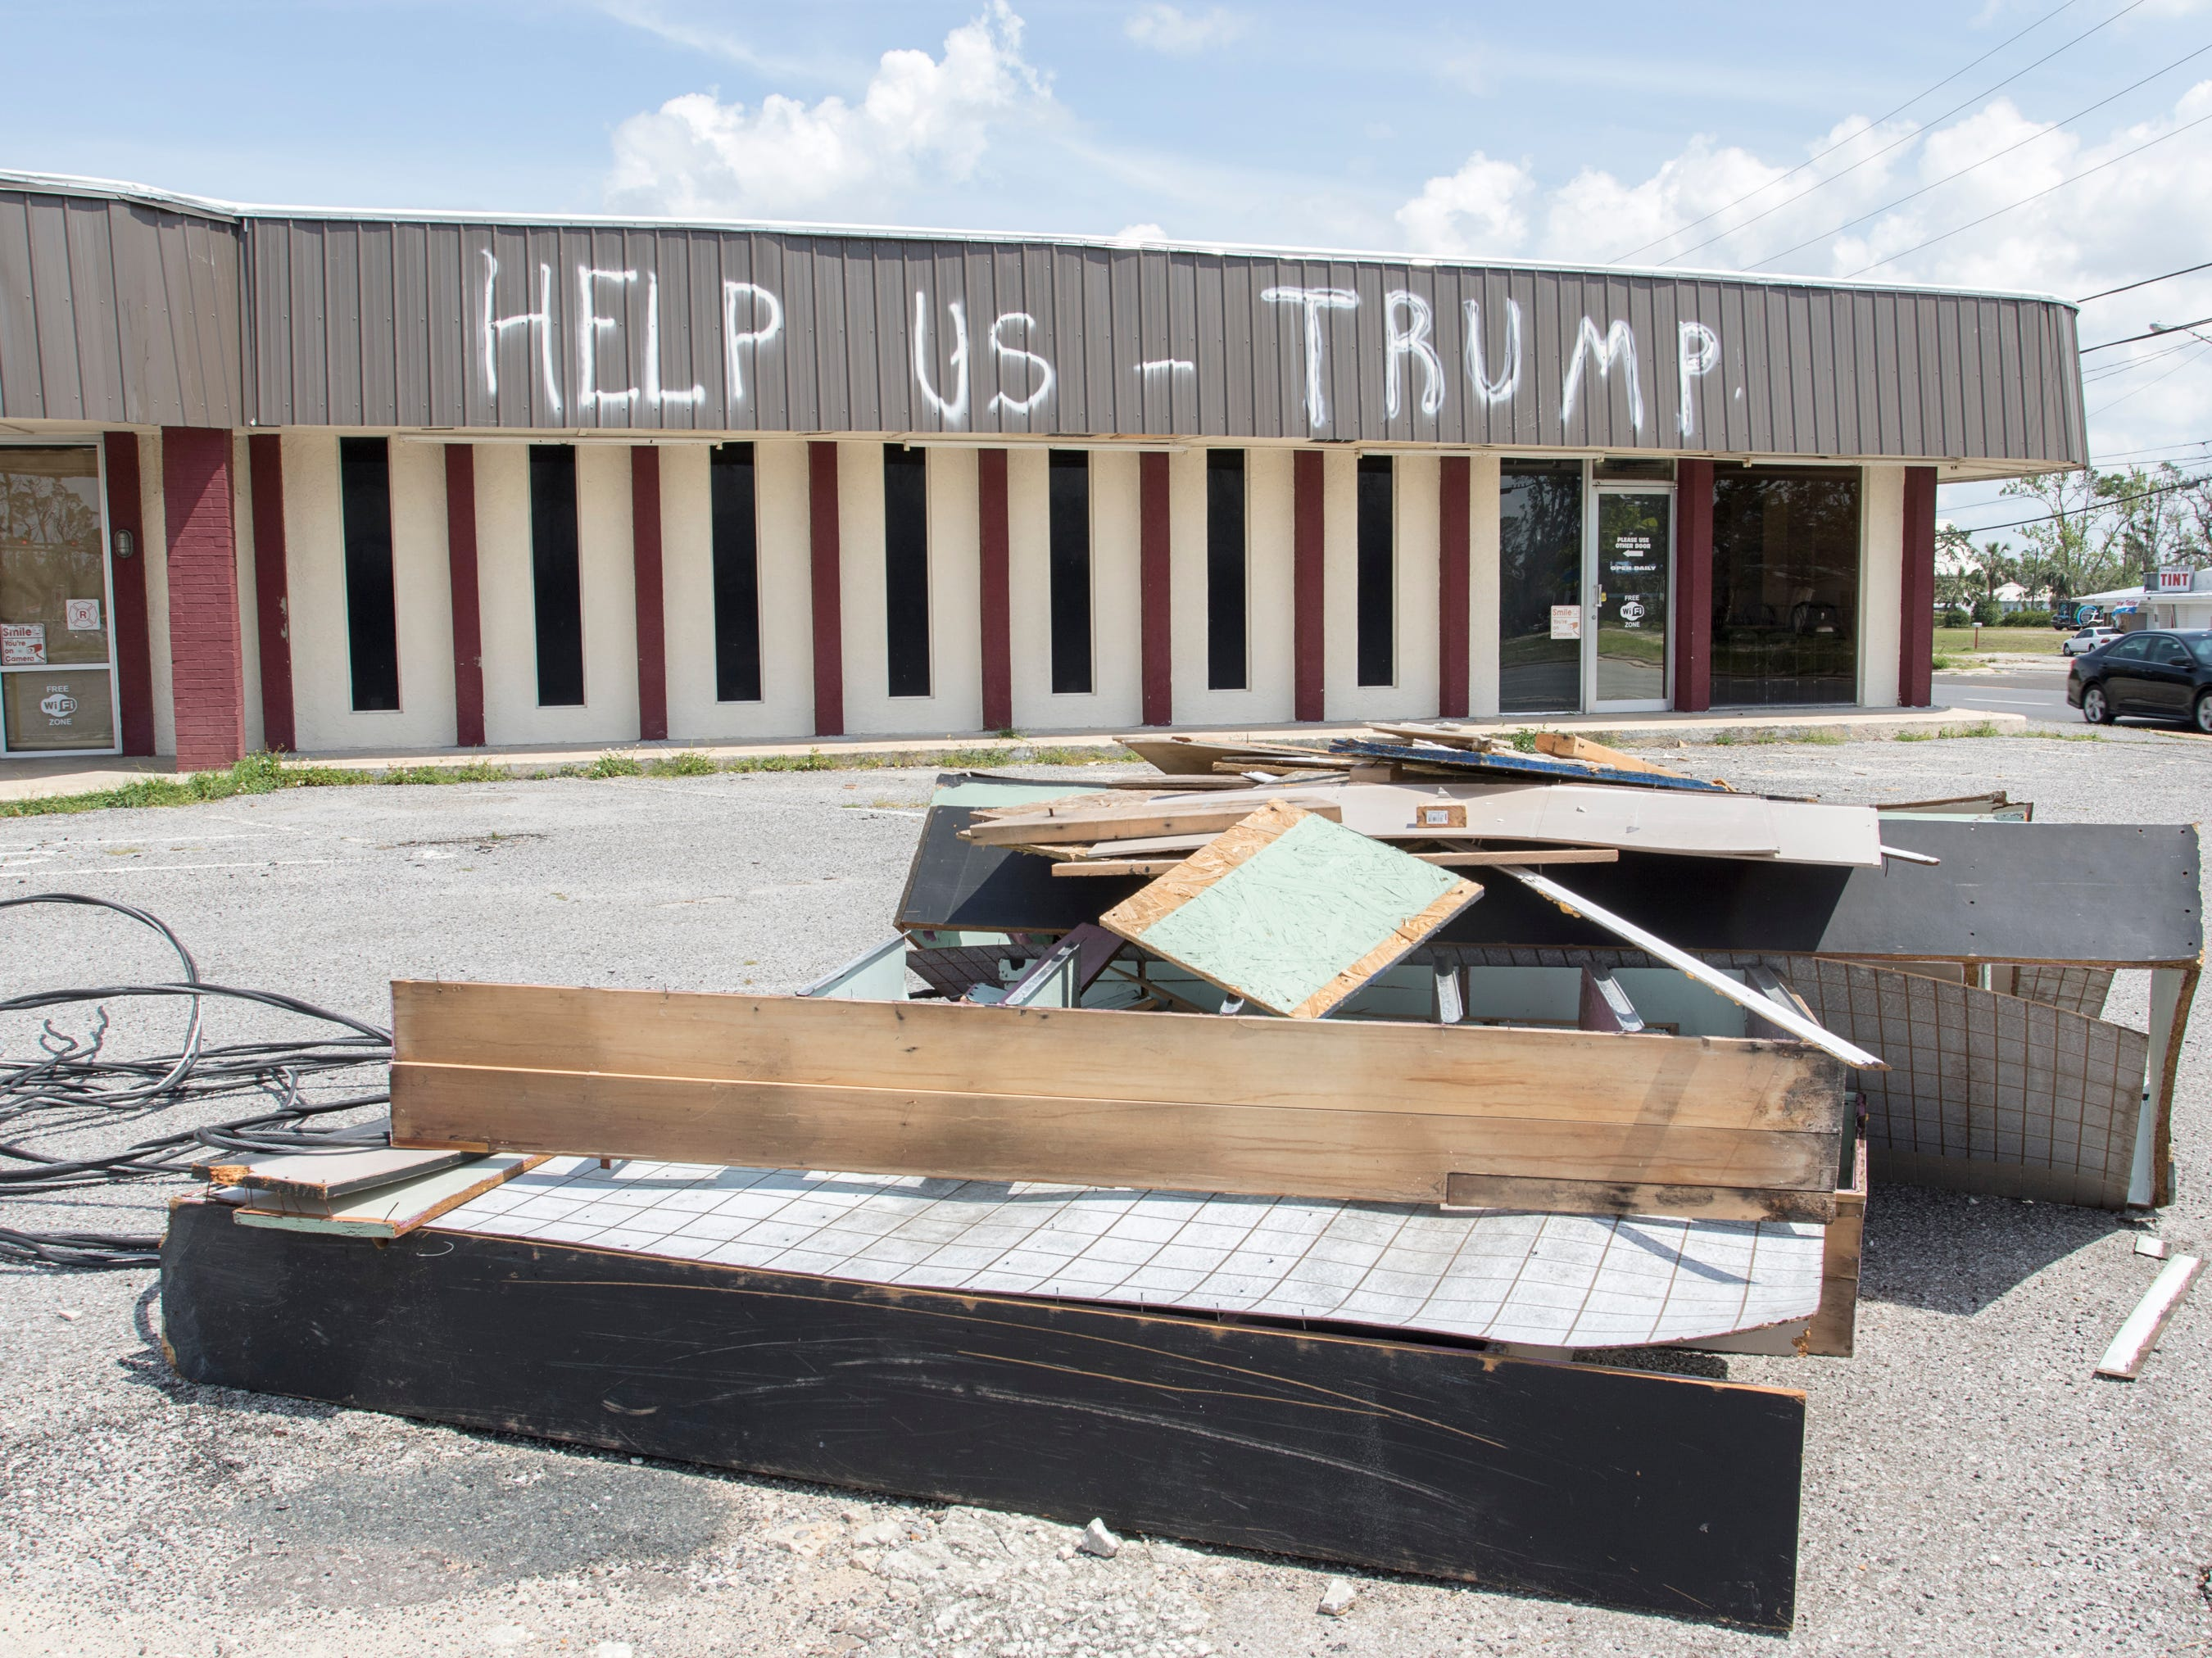 """""""Help Us - Trump"""" is still painted on a building in the Panama City, Florida on Wednesday, May 8, 2019.  Business owners Jamie and Jennifer Burton explained that they wrote this message prior to President Trump's intial visit to the area following Hurricane Michael."""